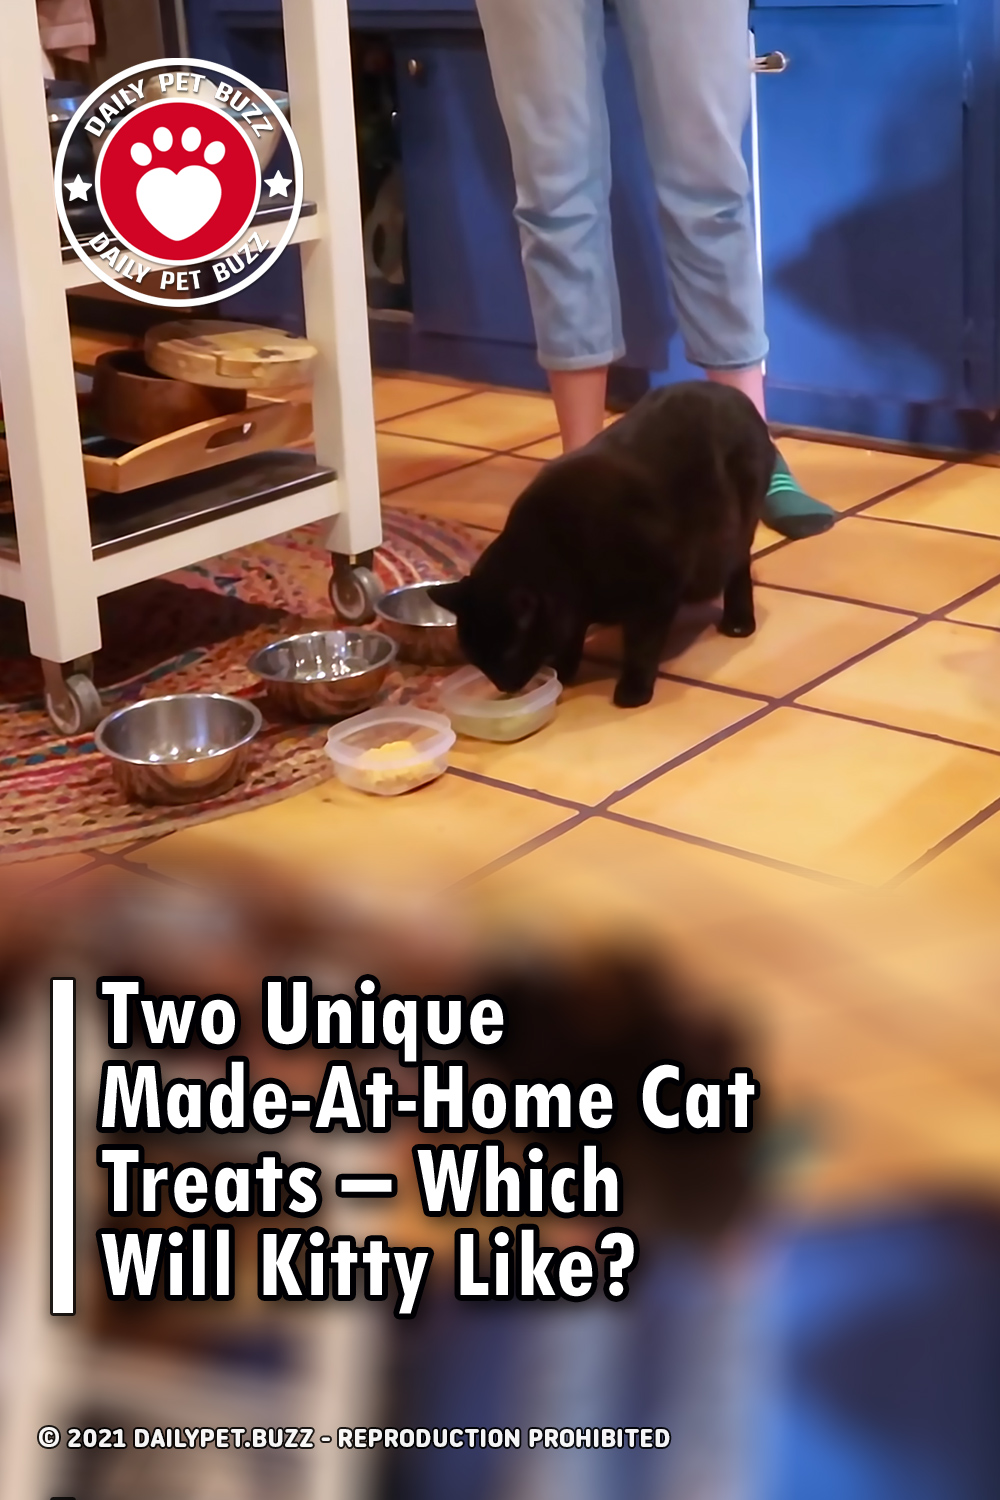 Two Unique Made-At-Home Cat Treats - Which Will Kitty Like?